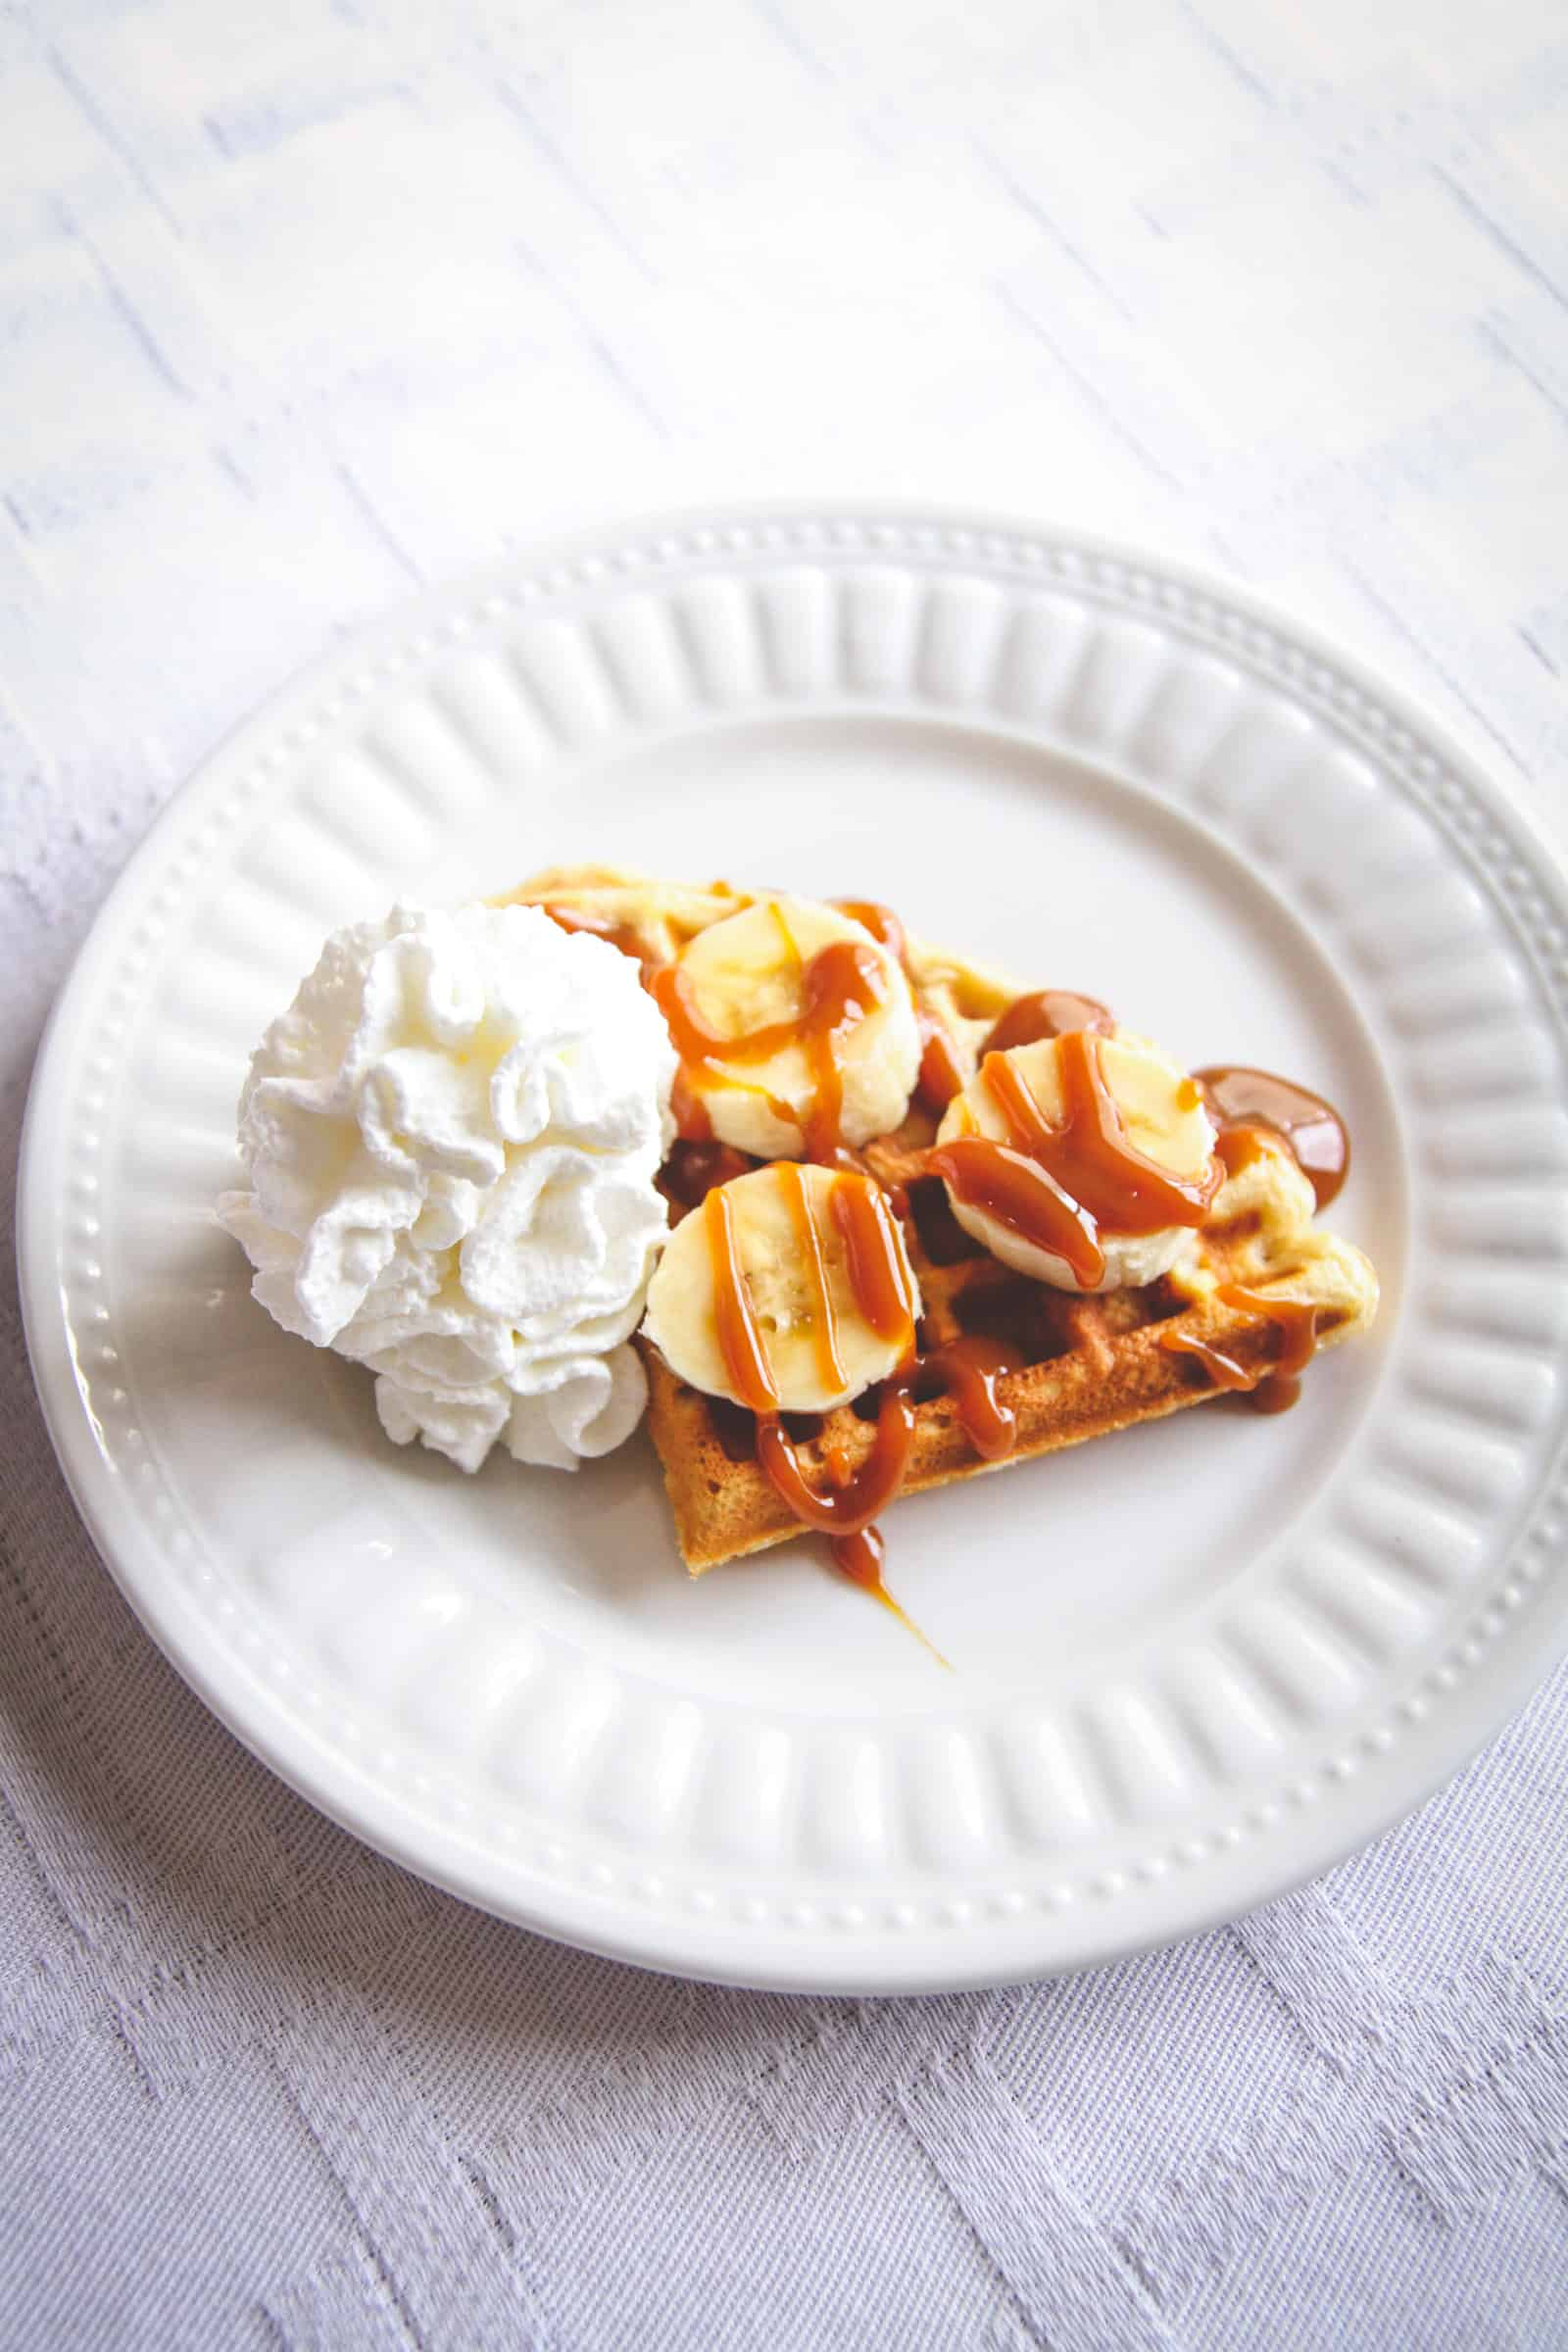 The most delicious banana caramel waffles for brunch